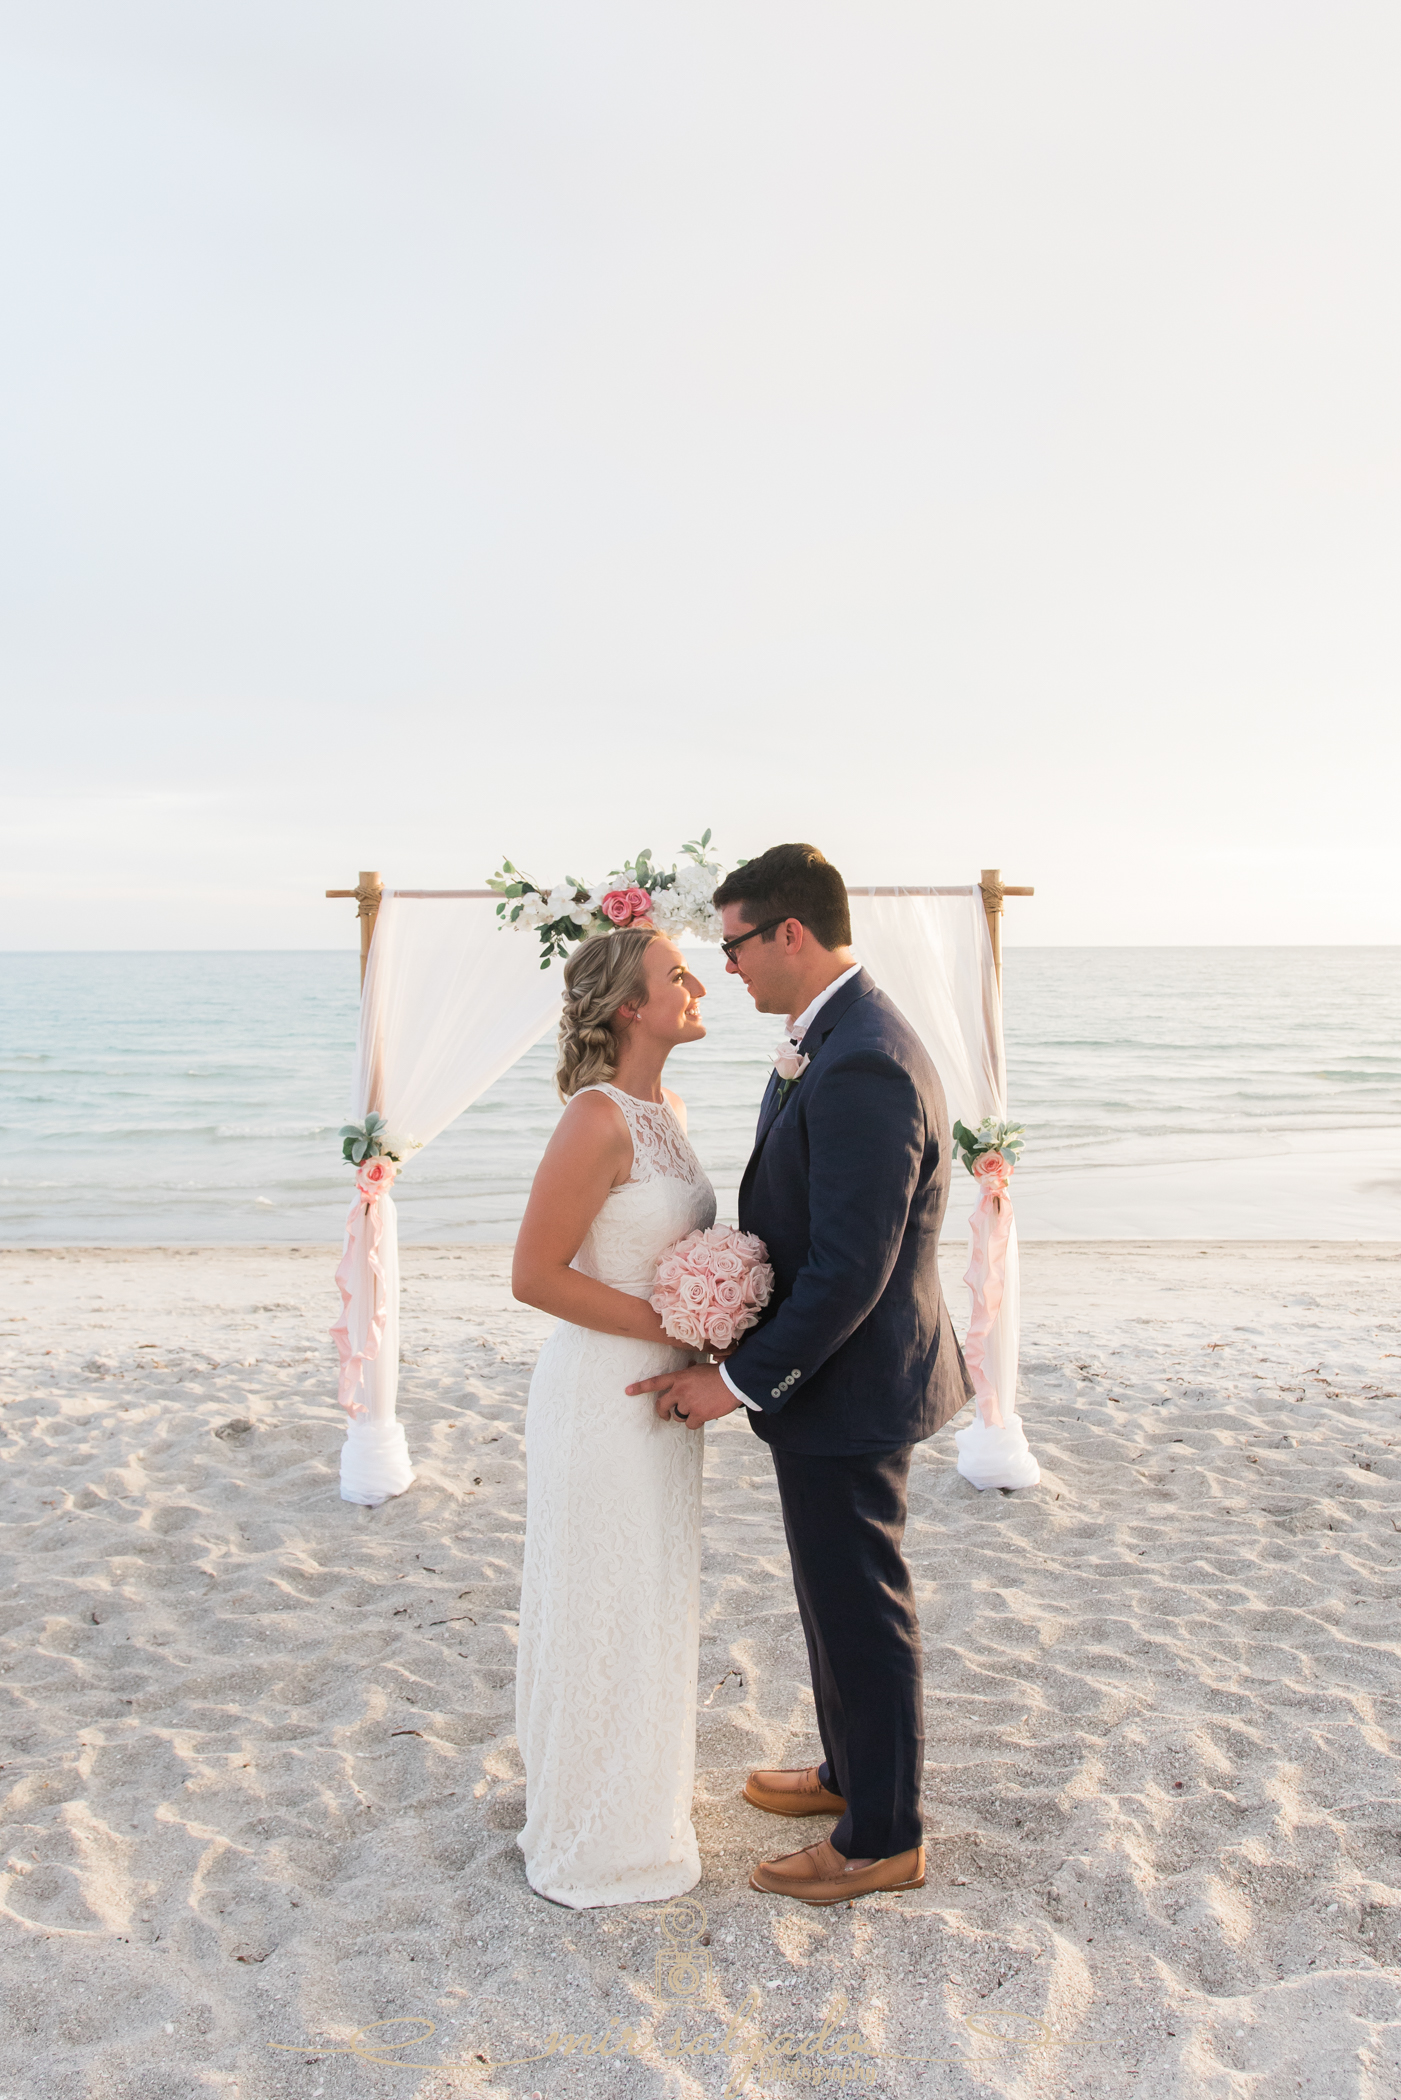 wedding-ceremony, wedding-vows, beach-wedding-ceremony, beach-resort-wedding-ceremony